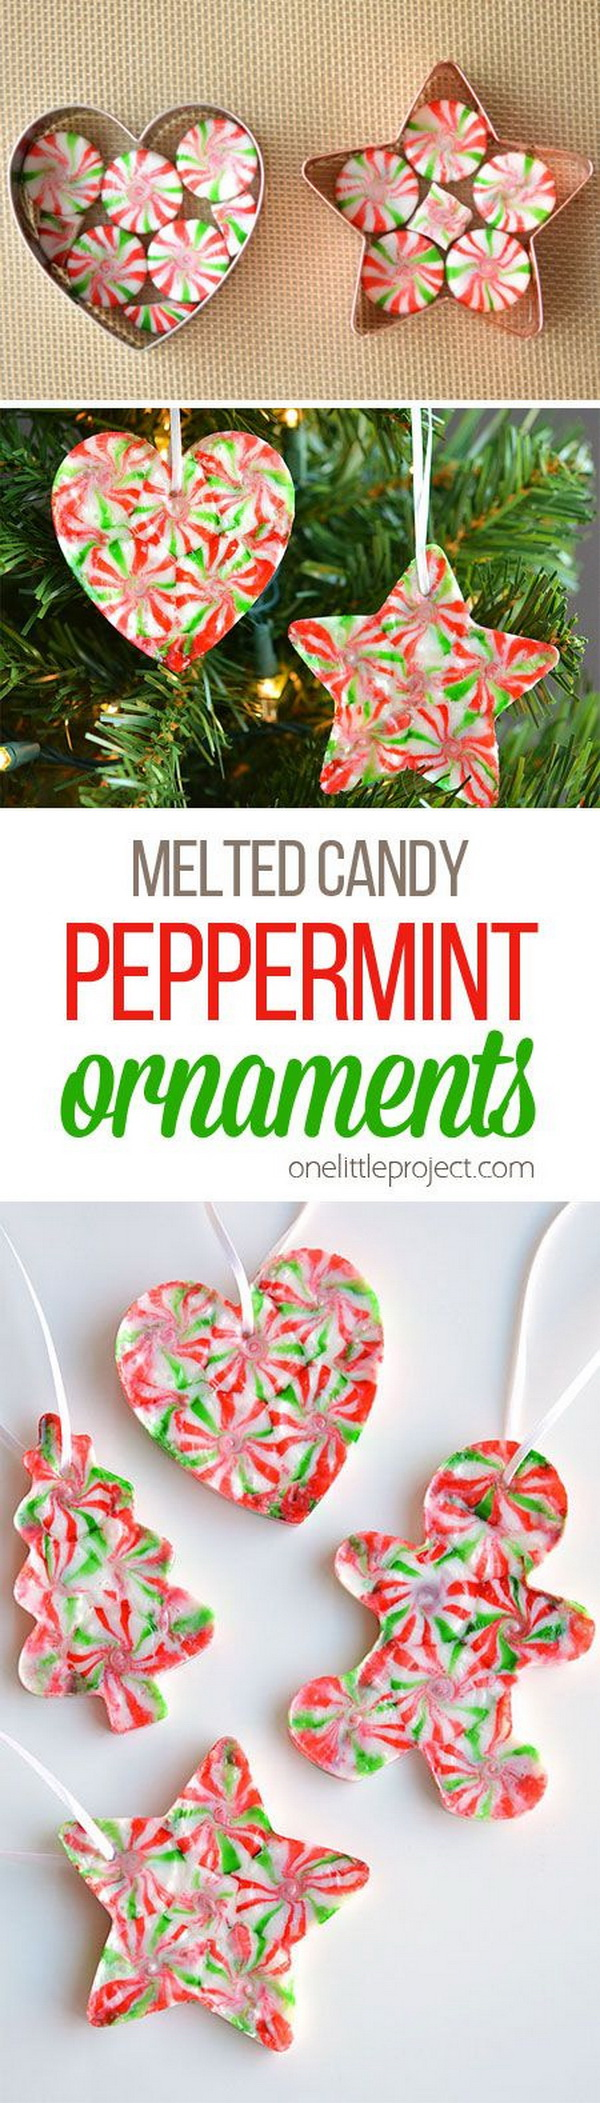 melted peppermint candy ornaments - Candy Ornaments For Christmas Tree